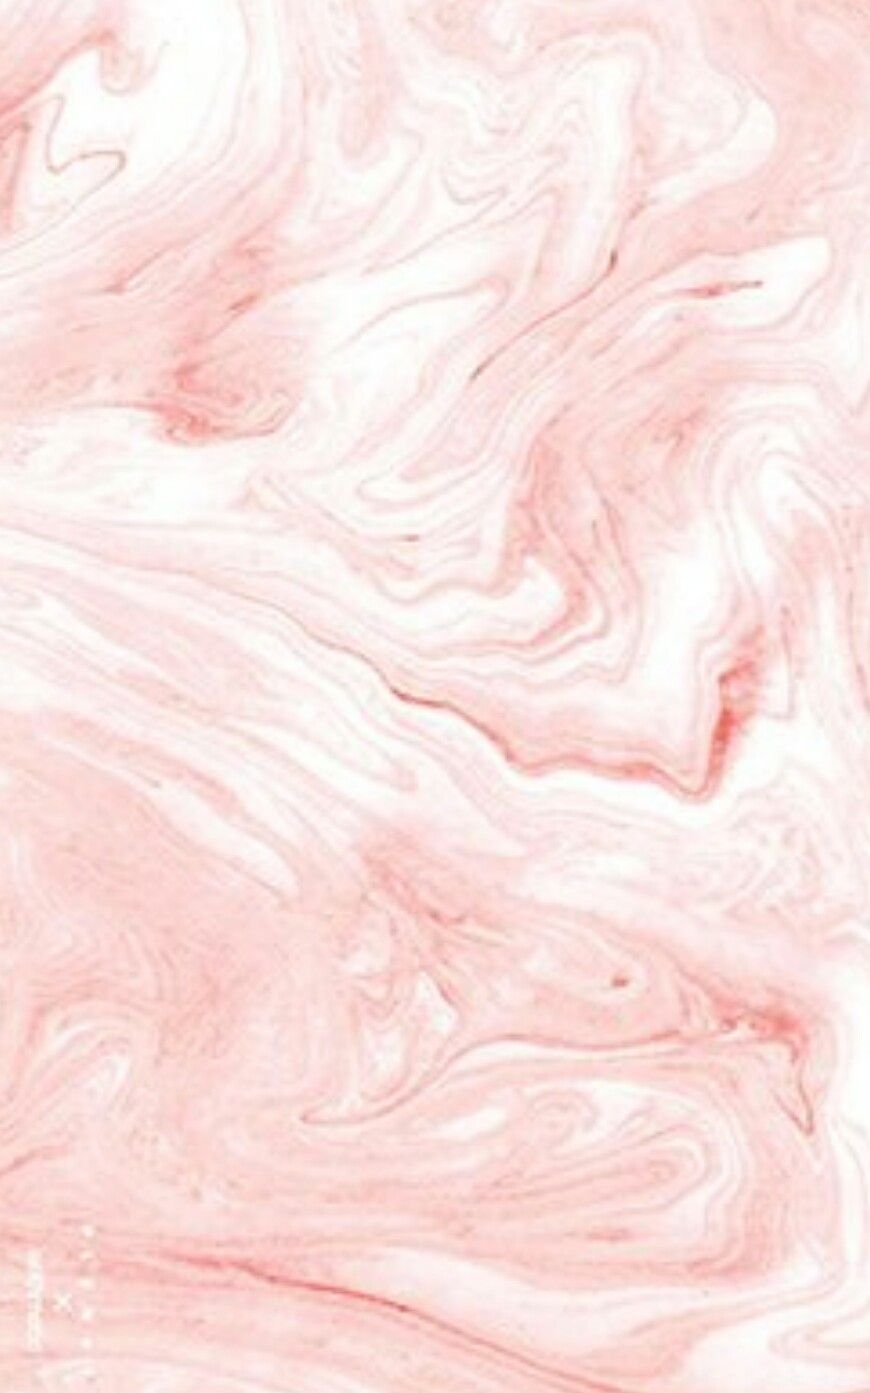 Best Wallpaper Marble Cotton Candy - 633bacfe5fa816eea270b4a3892d71b9  Gallery_597948.jpg